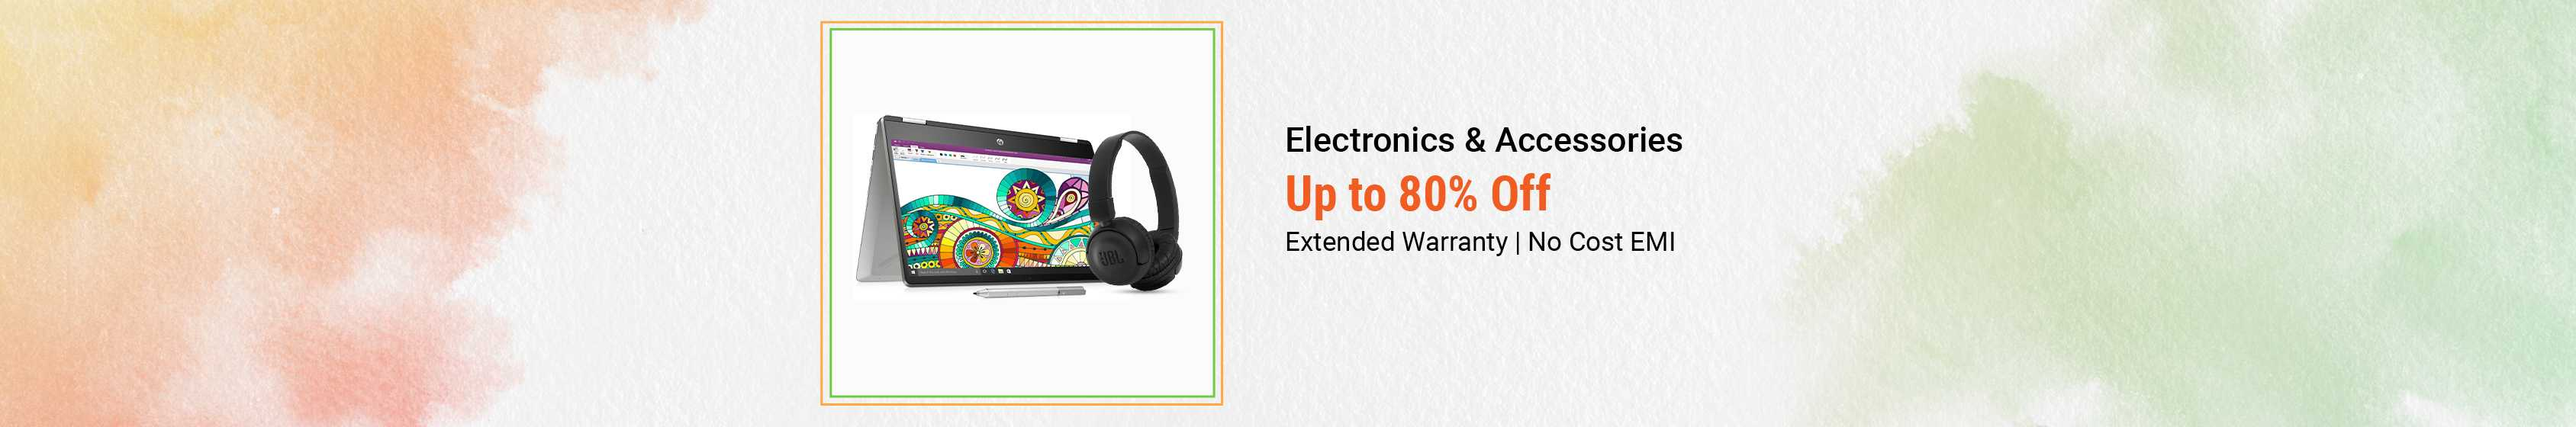 Electronics Great Offers Aug 11 Store Online - Buy Electronics Great Offers Aug 11 Online at Best Price in India